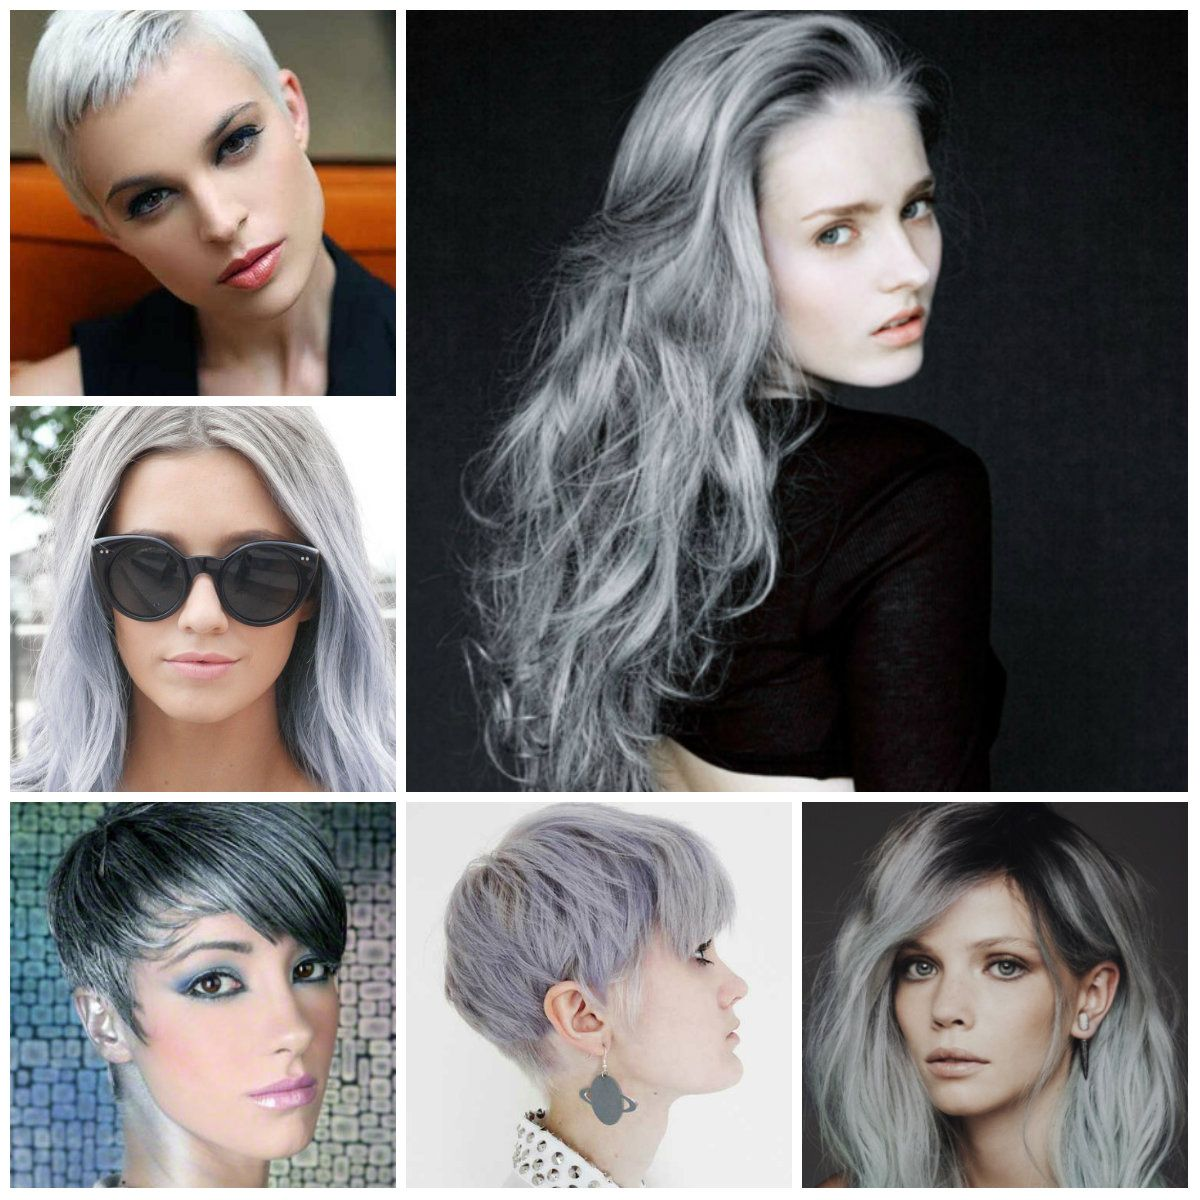 Stylish Ombre Hair Ideas Organic Colors 2016 Trends And It Suits Every Woman